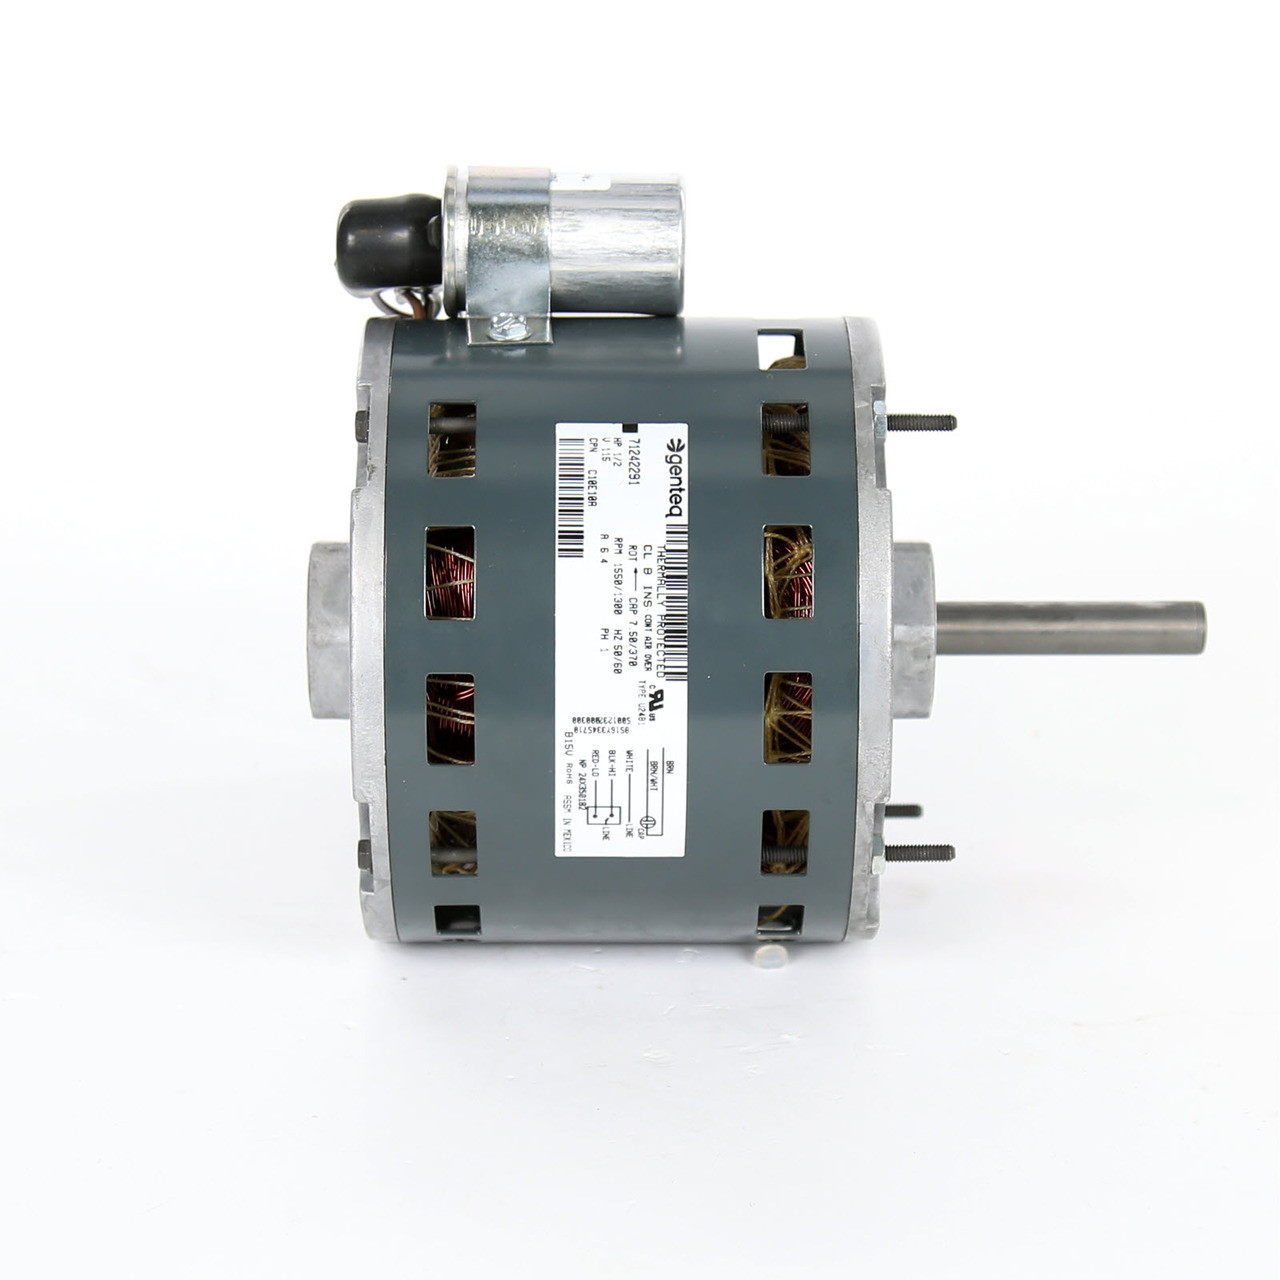 C10e10a loren cook oem replacement 1 2 hp motor c10e10a for Restaurant exhaust fan motor replacement